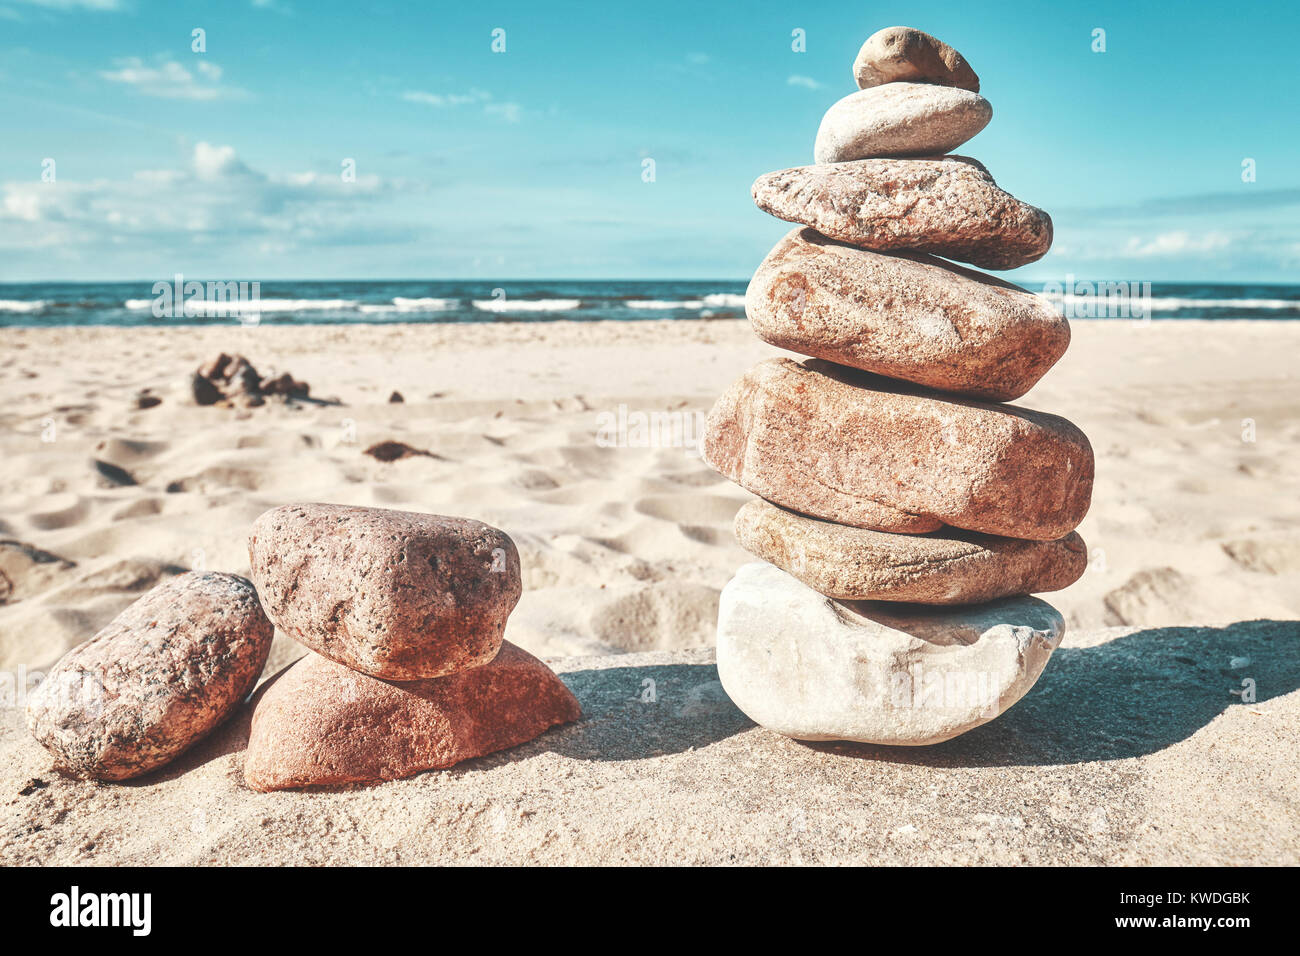 Retro toned picture of a stone stack on a beach, zen like natural background. - Stock Image